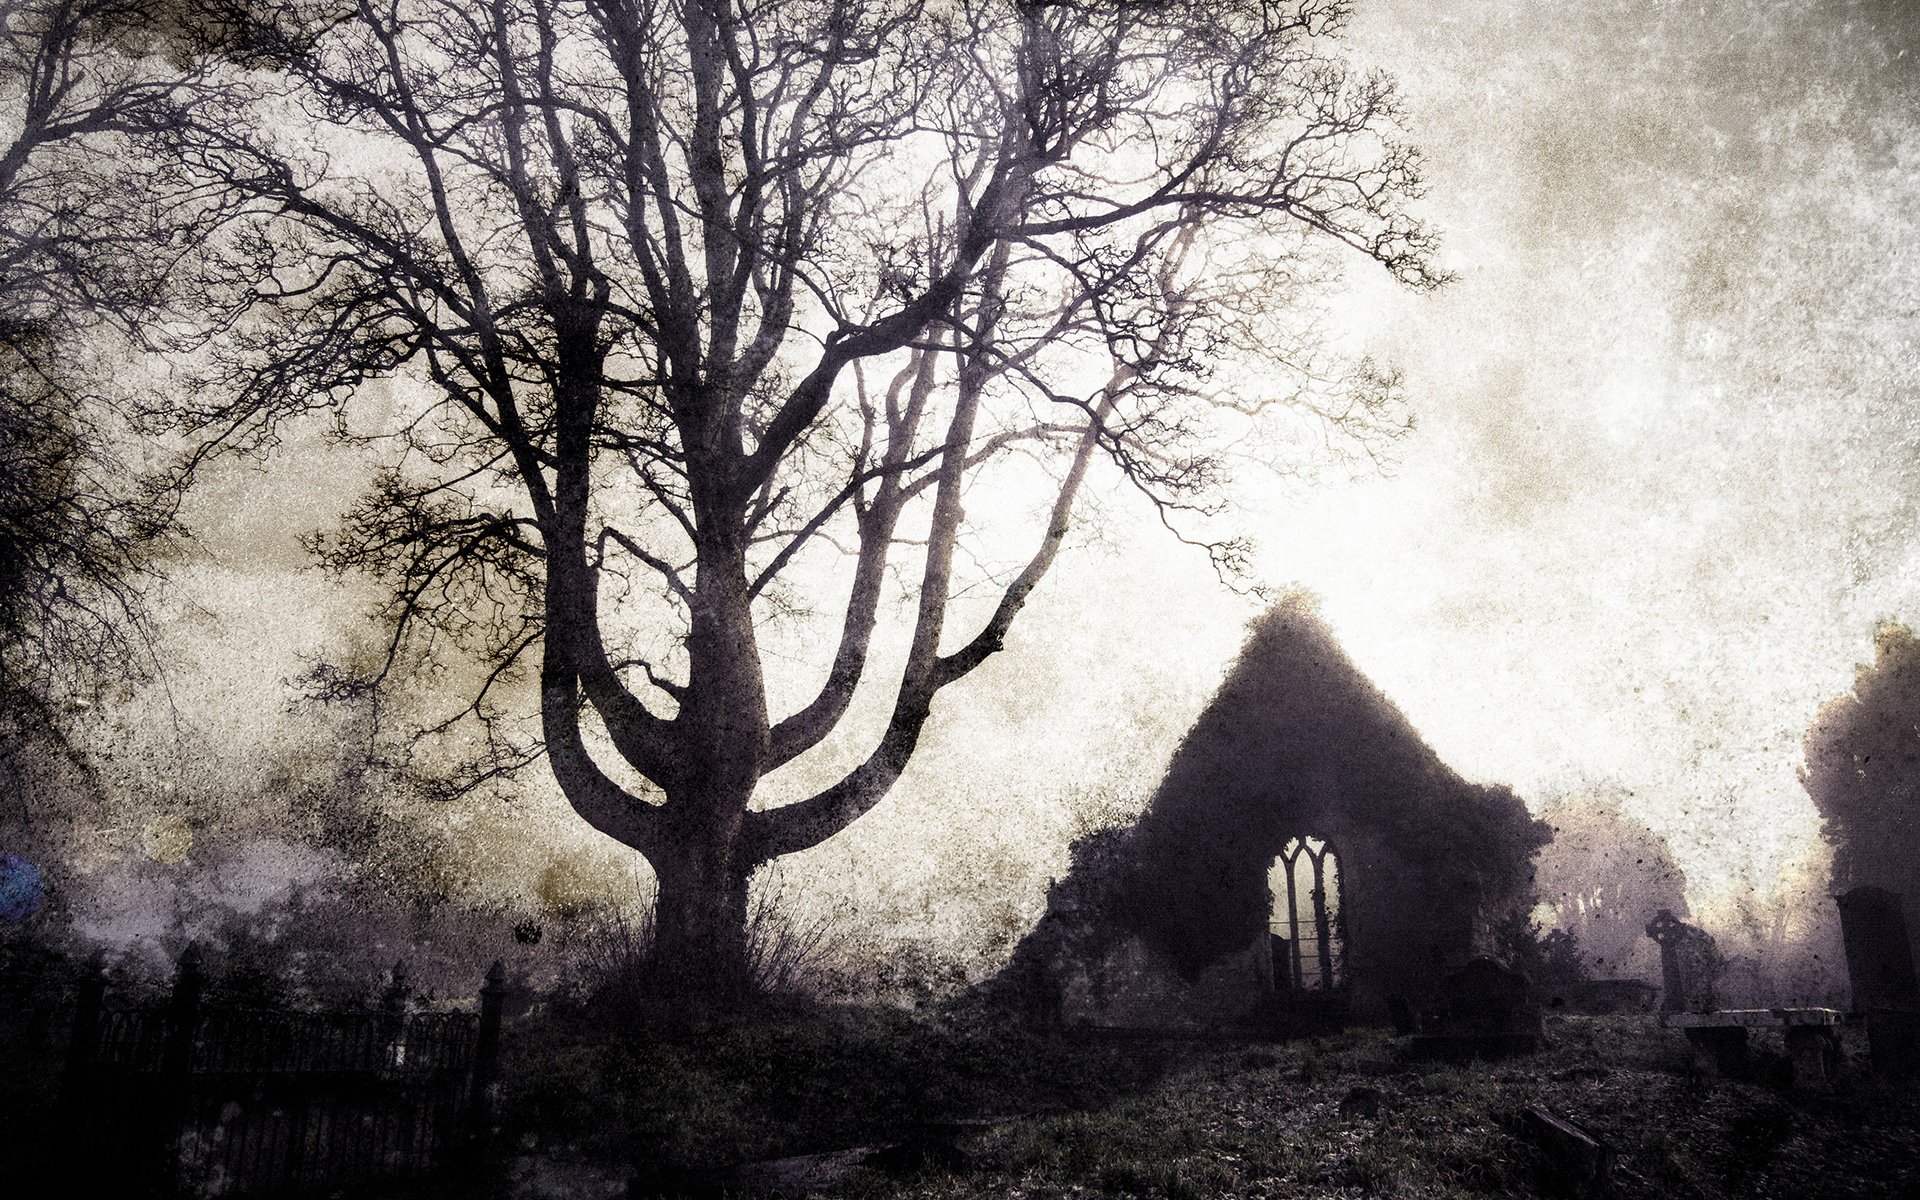 Tree Cemetery gothic buildings ruins cross landscapes